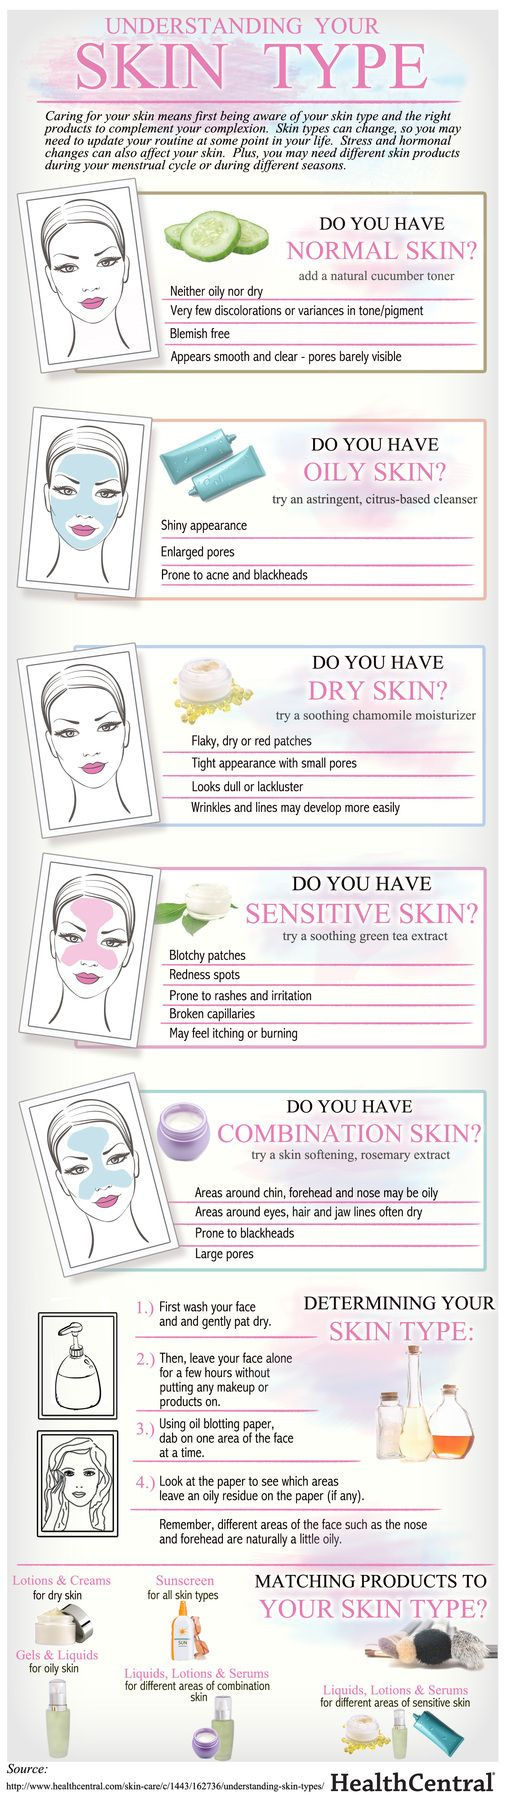 All about understanding your skin type. This infographic all about skin will help you decipher the kind of skin you have, and what to do to treat and take care of your skin. #HealthCentral #SkinHealth #Skin  http://www.healthcentral.com/skin-care/c/458275/163255/understanding-infographic?ap=2012